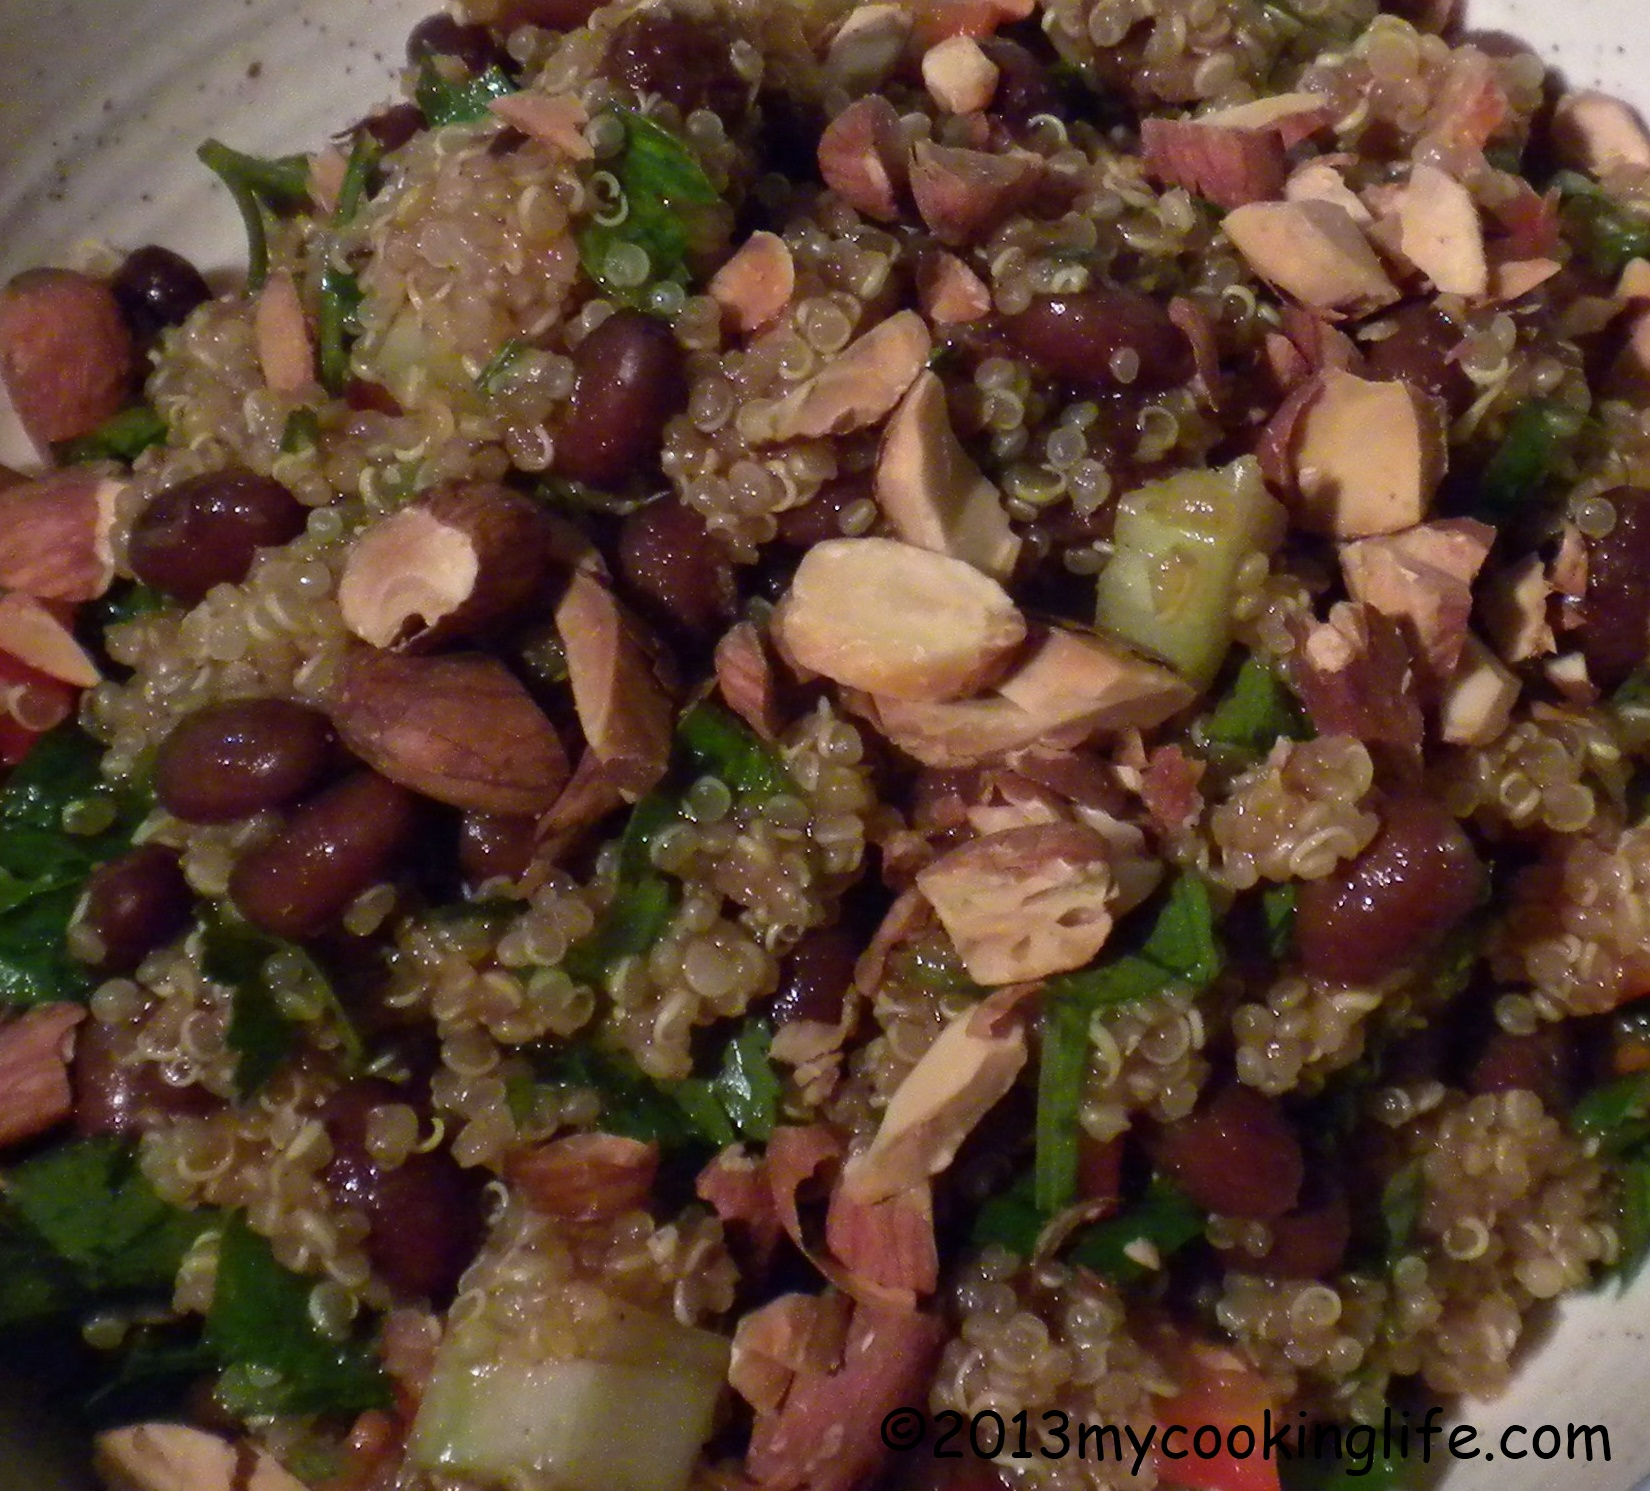 How about some red beans? They do wonders for this quinoa dish.